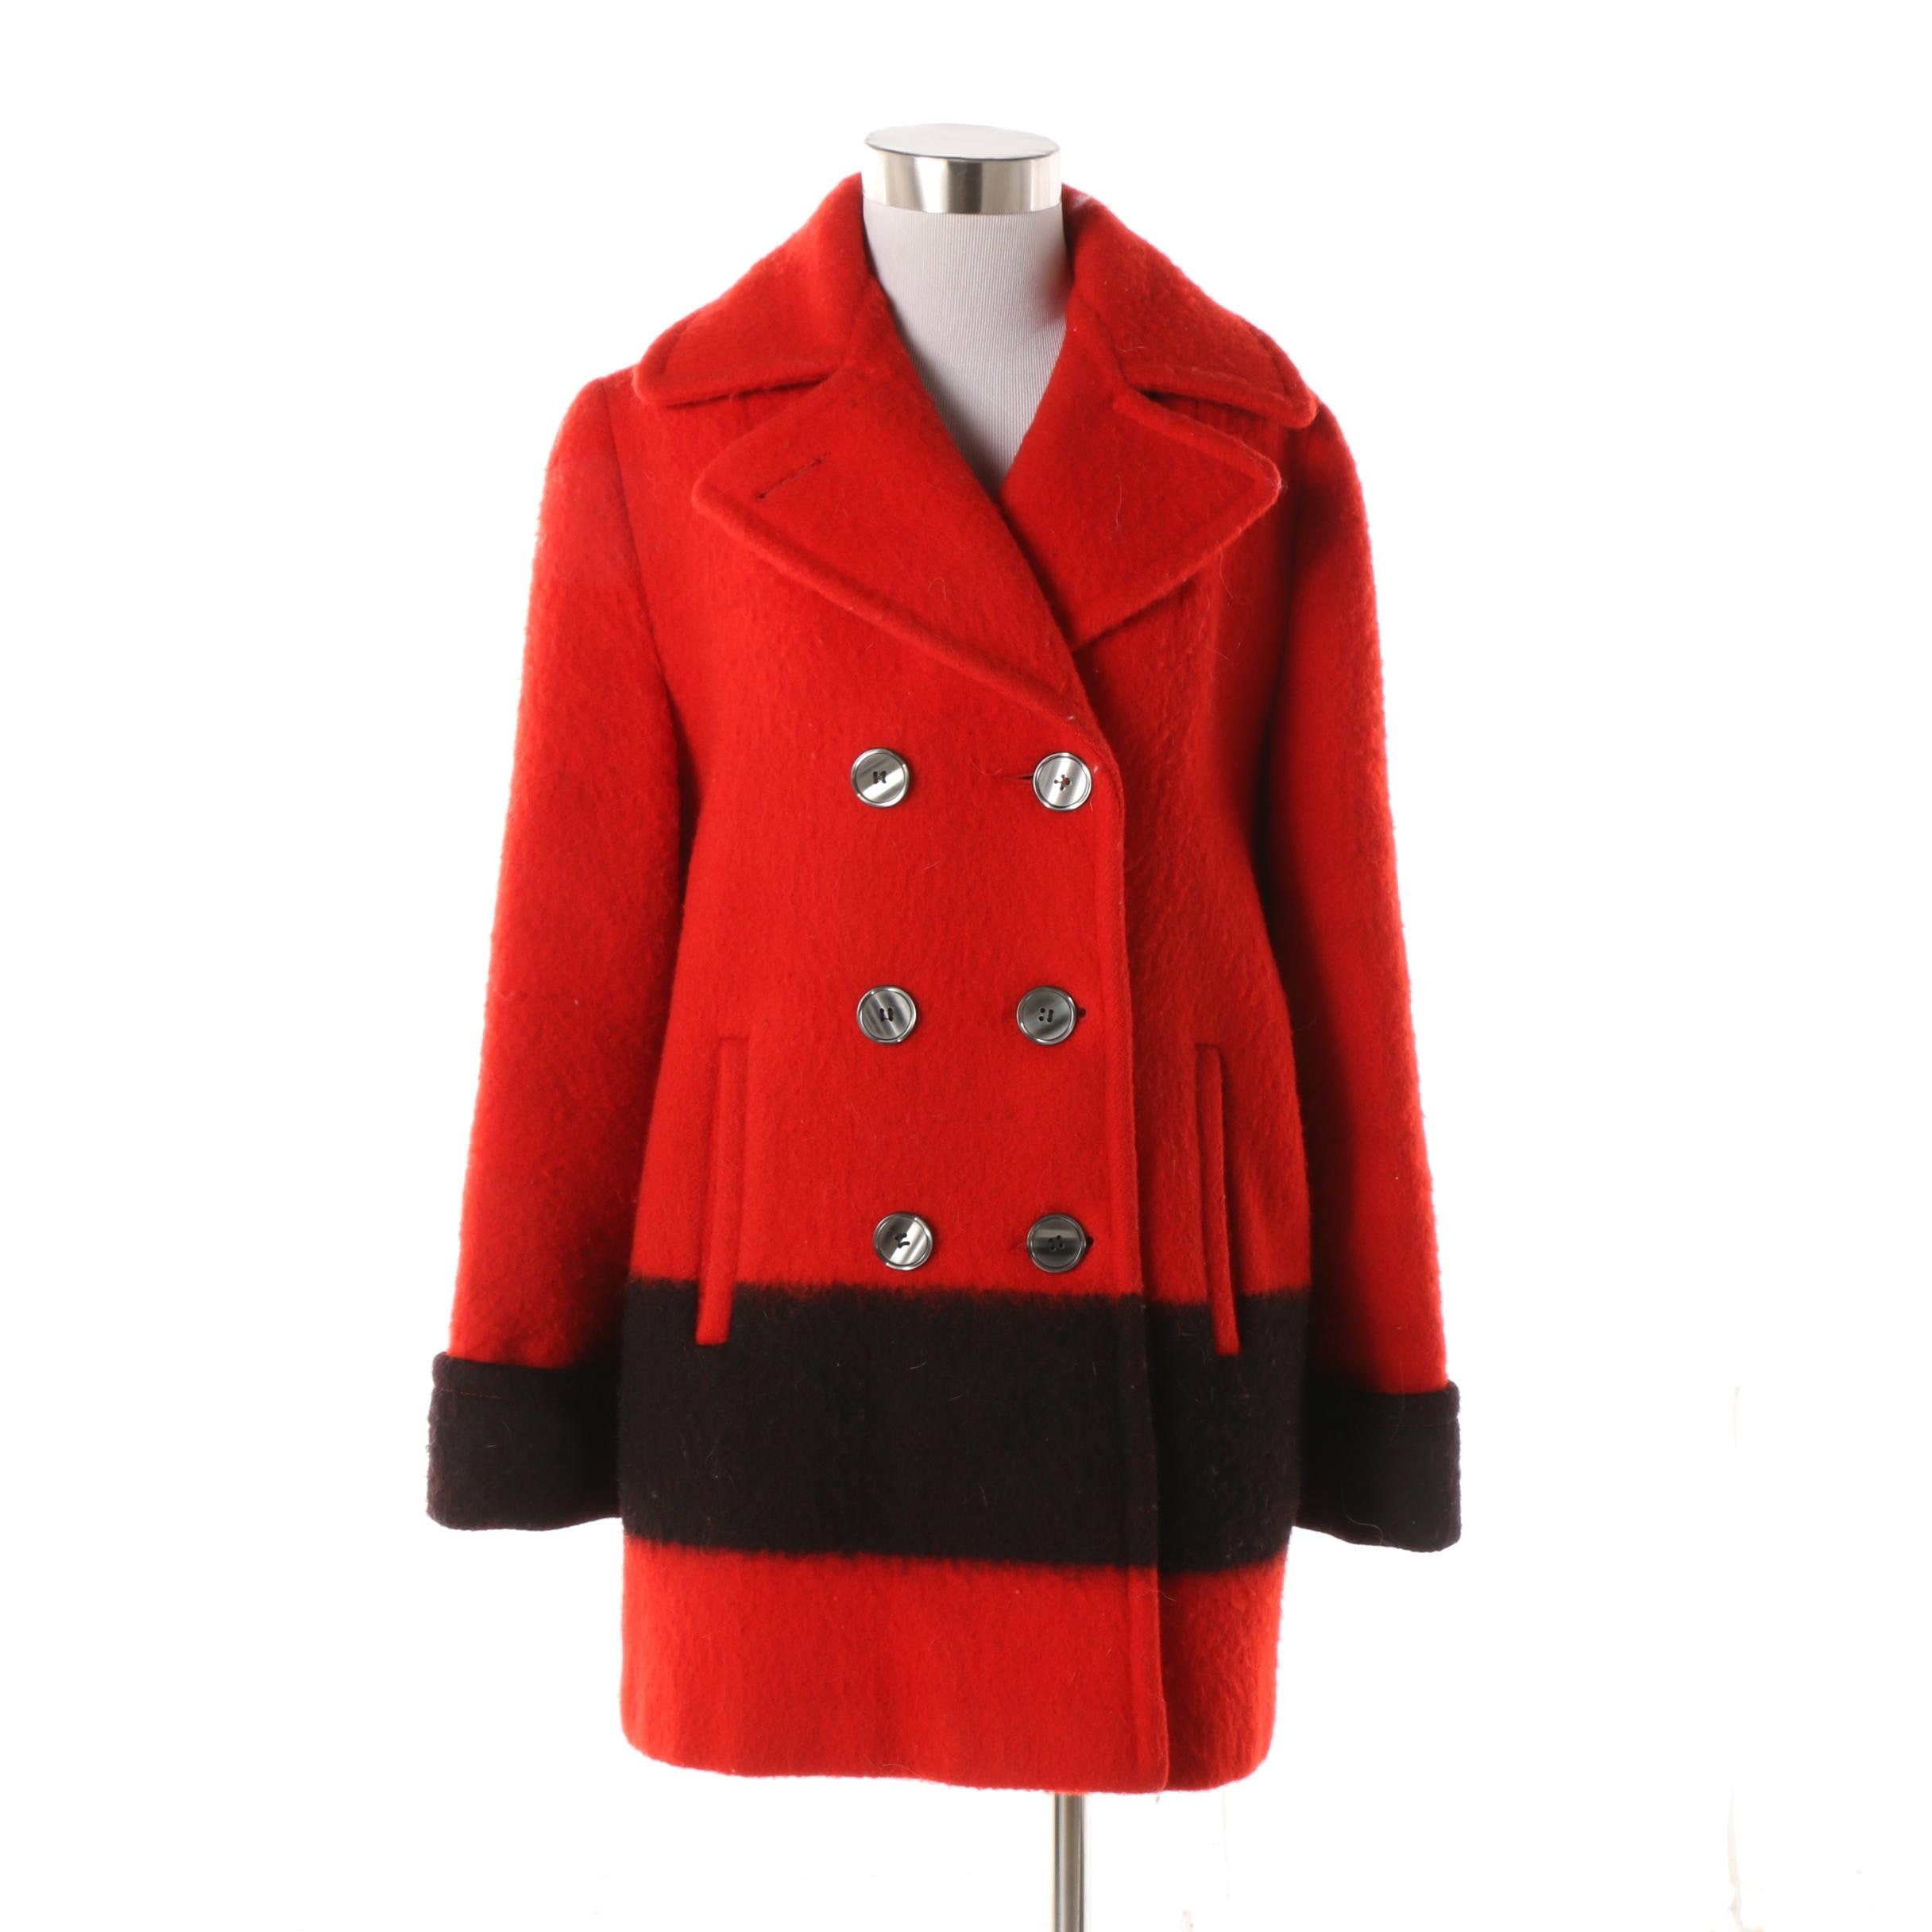 Women's Vintage Hudson's Bay Red Wool Double-Breasted Blanket Coat